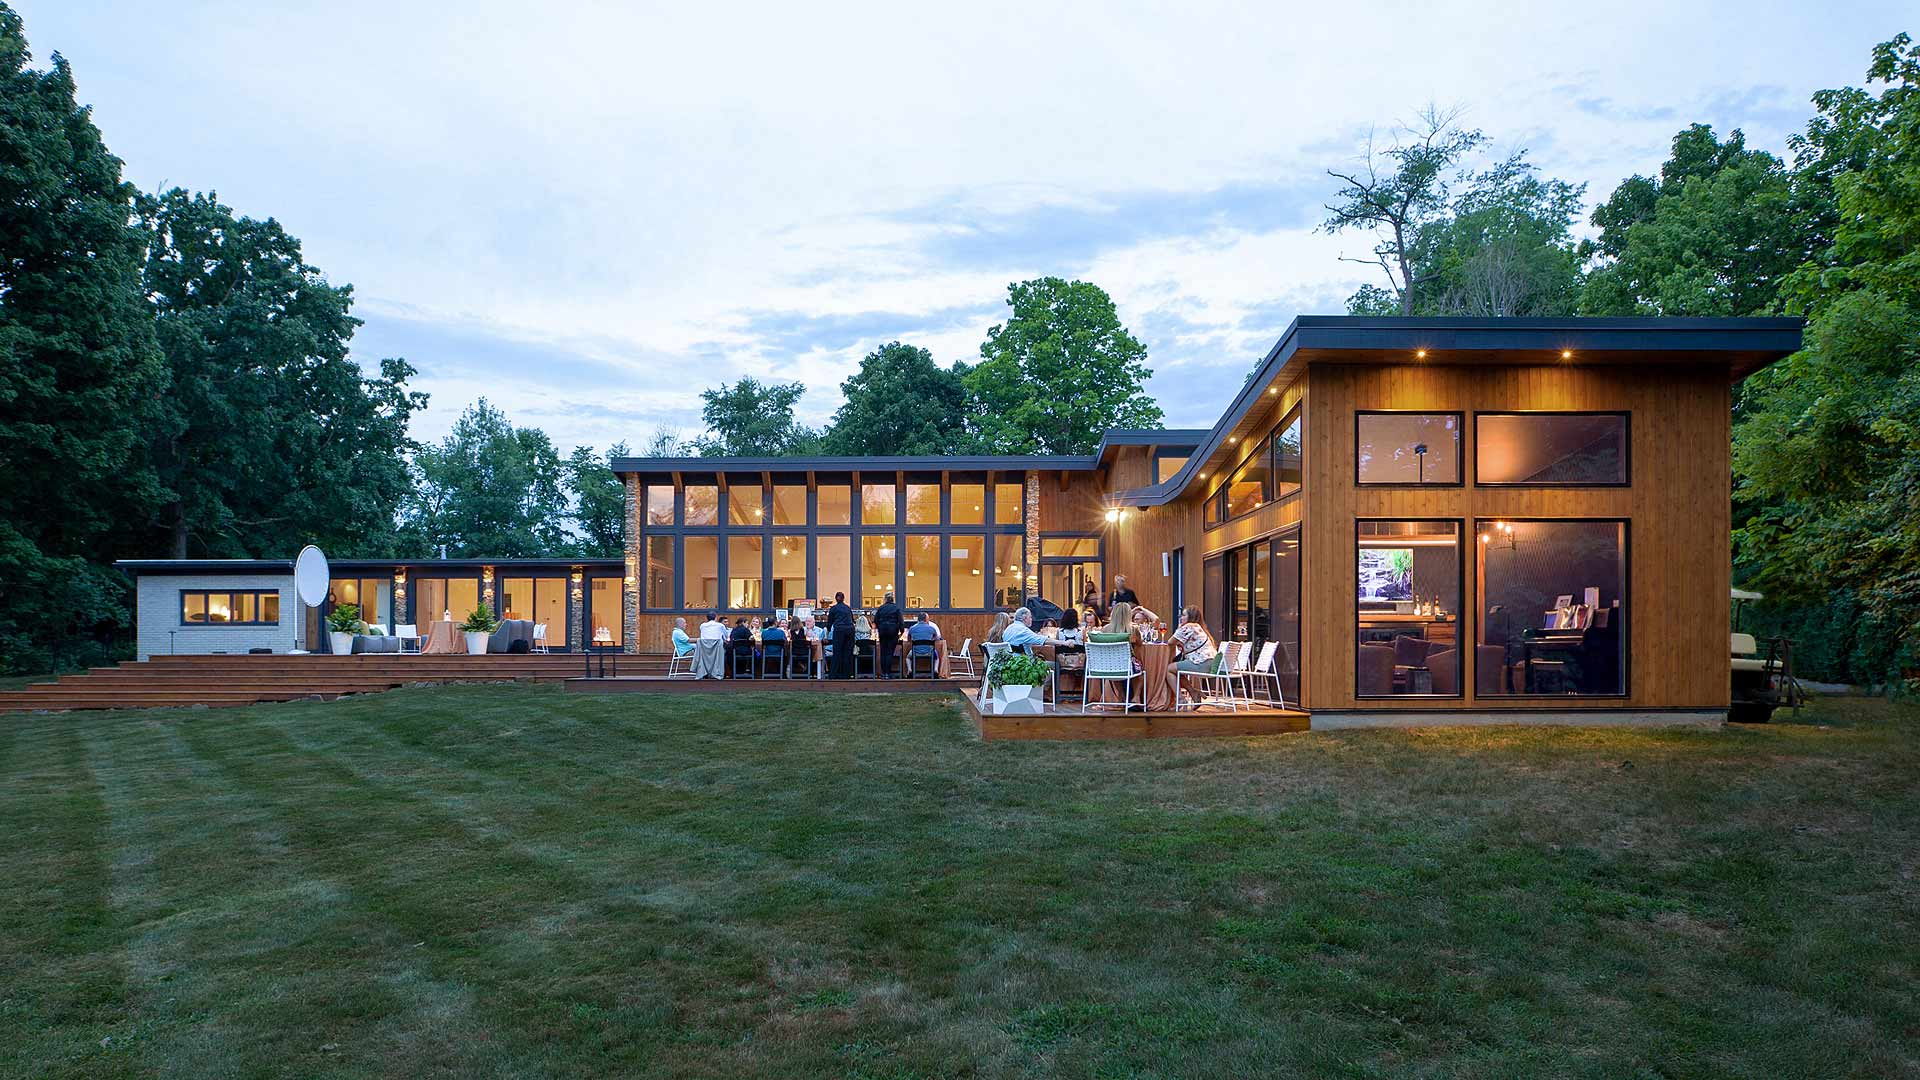 Rear Exterior Elevation During Summer Party - Cigar Room Addition - Shed Roofs - Cedar Siding - Midcentury Modern Addition (Cigar Room) - Brendonwood, Indianapolis